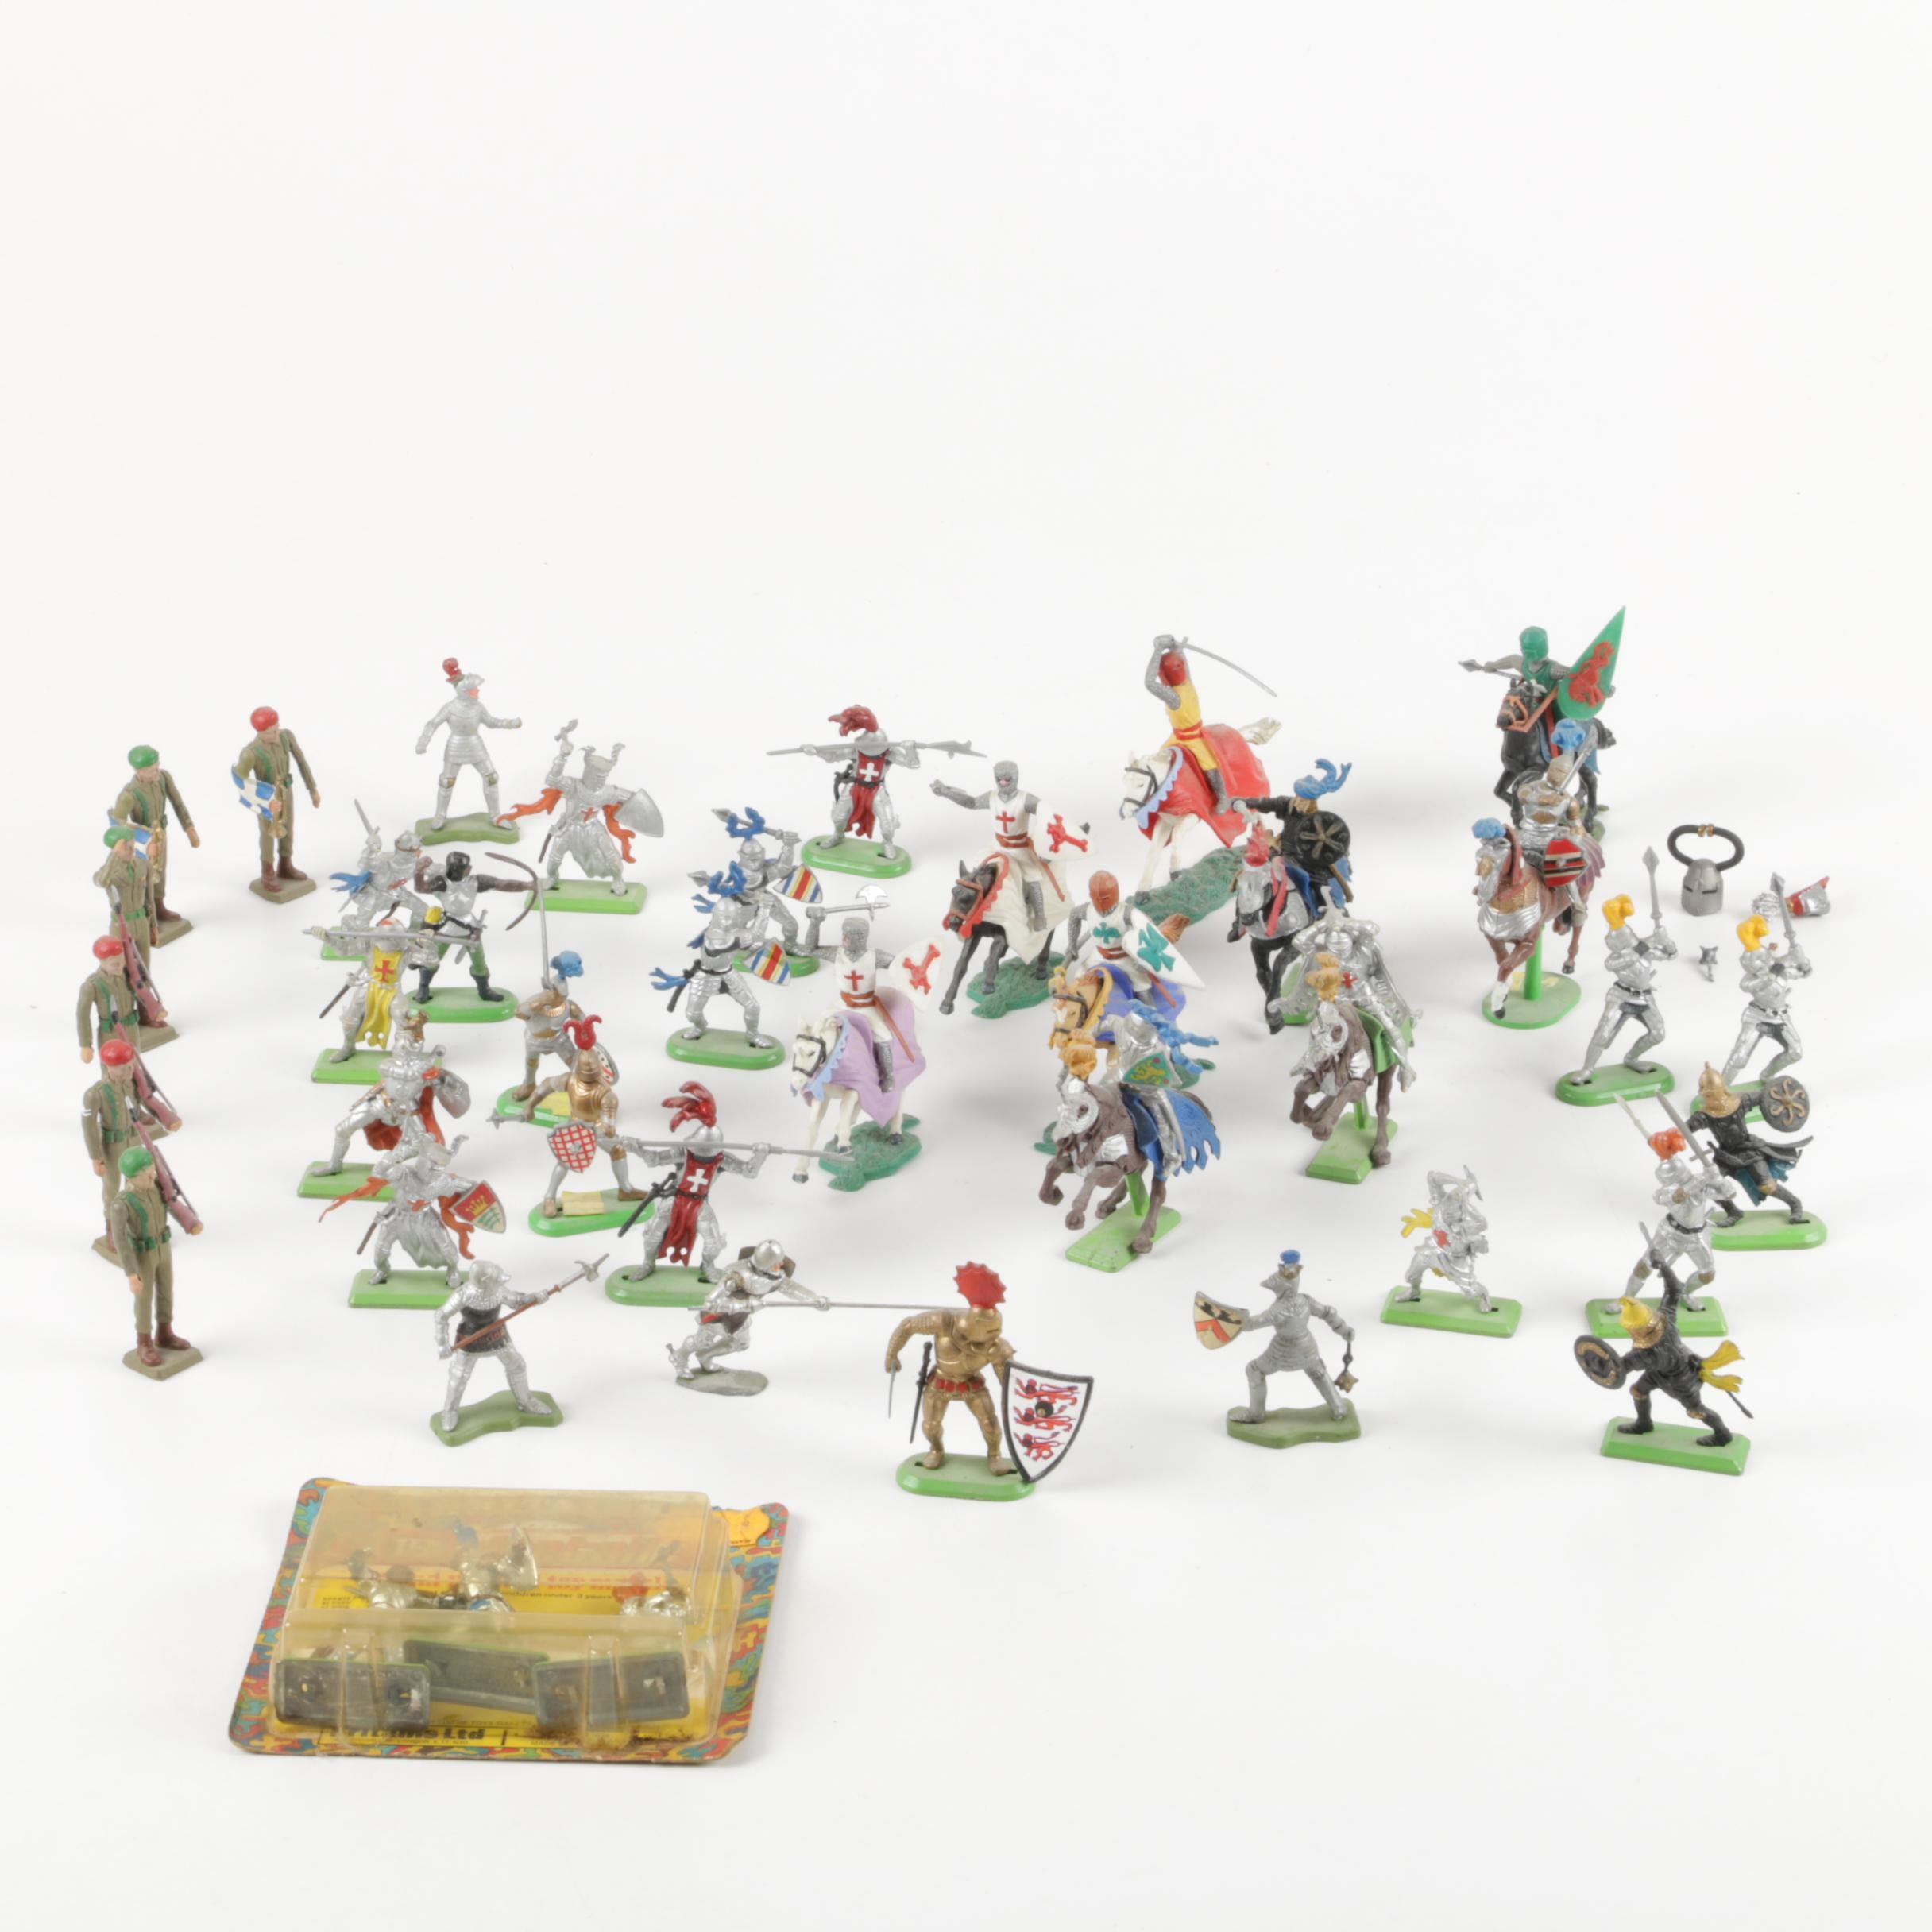 Assortment of Knights in Armor Figurines